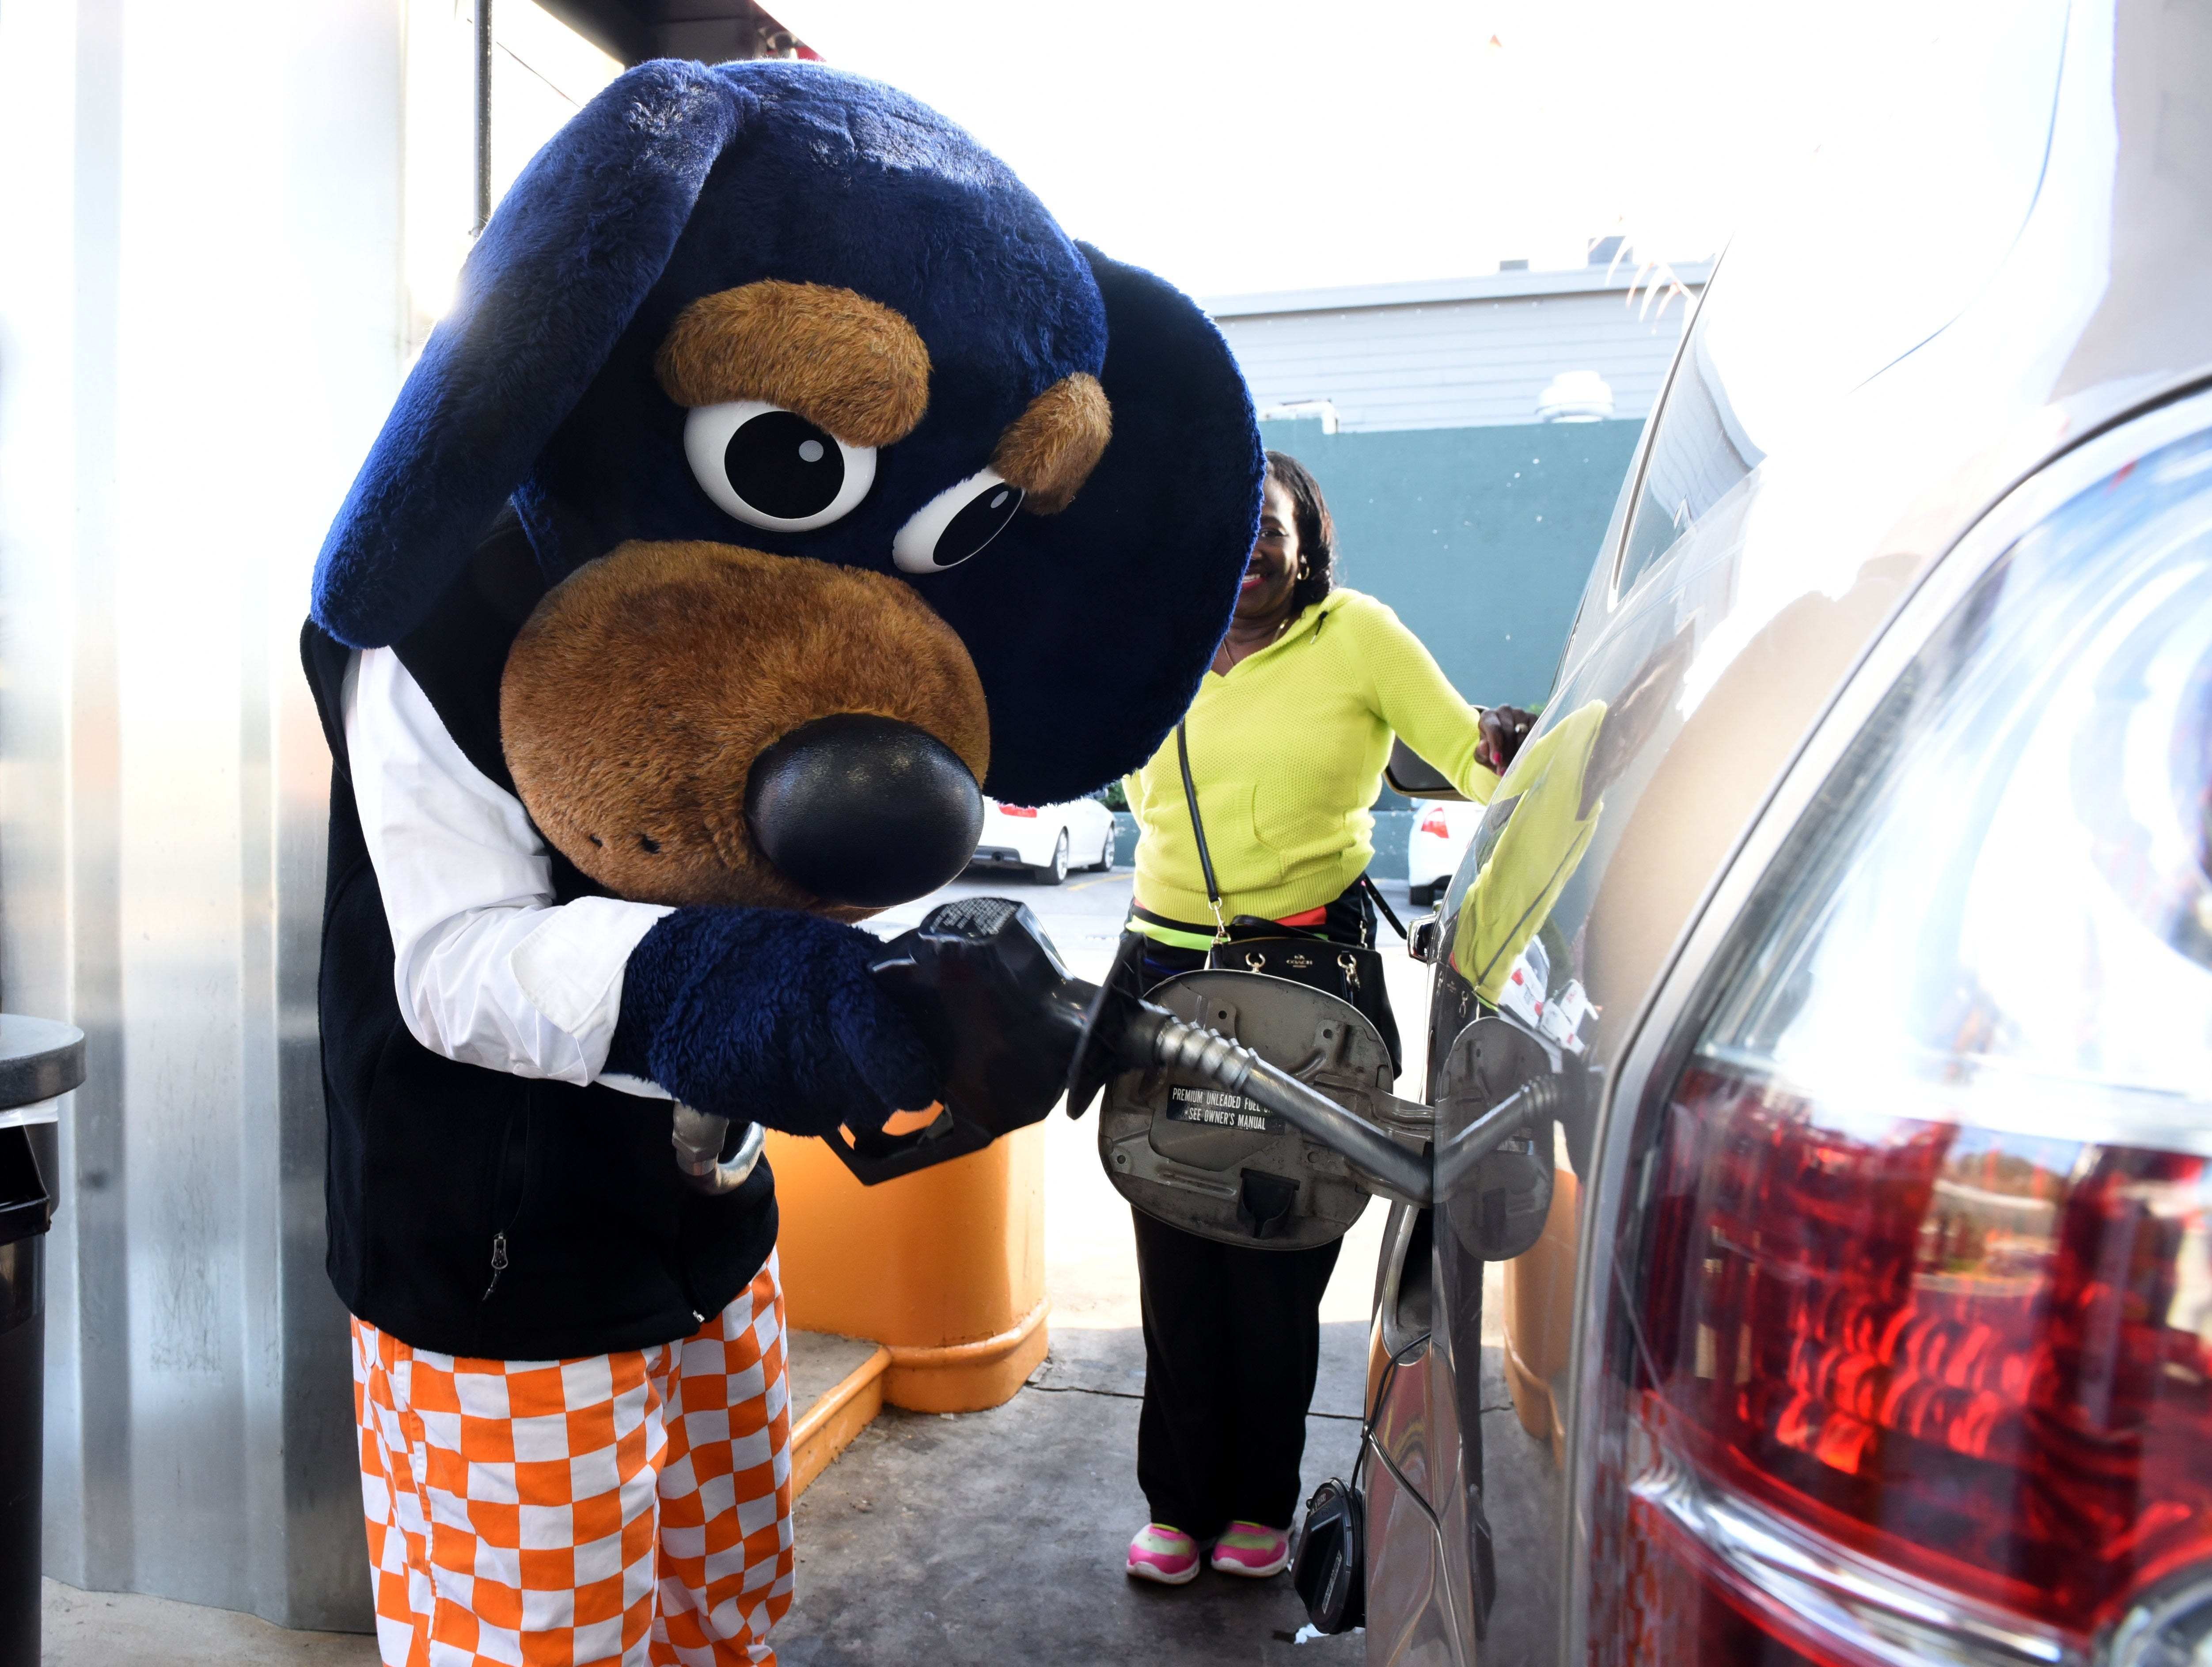 The University of Tennessee Spirit Team mascot Smokey Jr. pumped gas for Yolanda Hunt McFadden at Pilot station on Cumberland Ave to raise money for United Way Tuesday, Oct. 11, 2016.